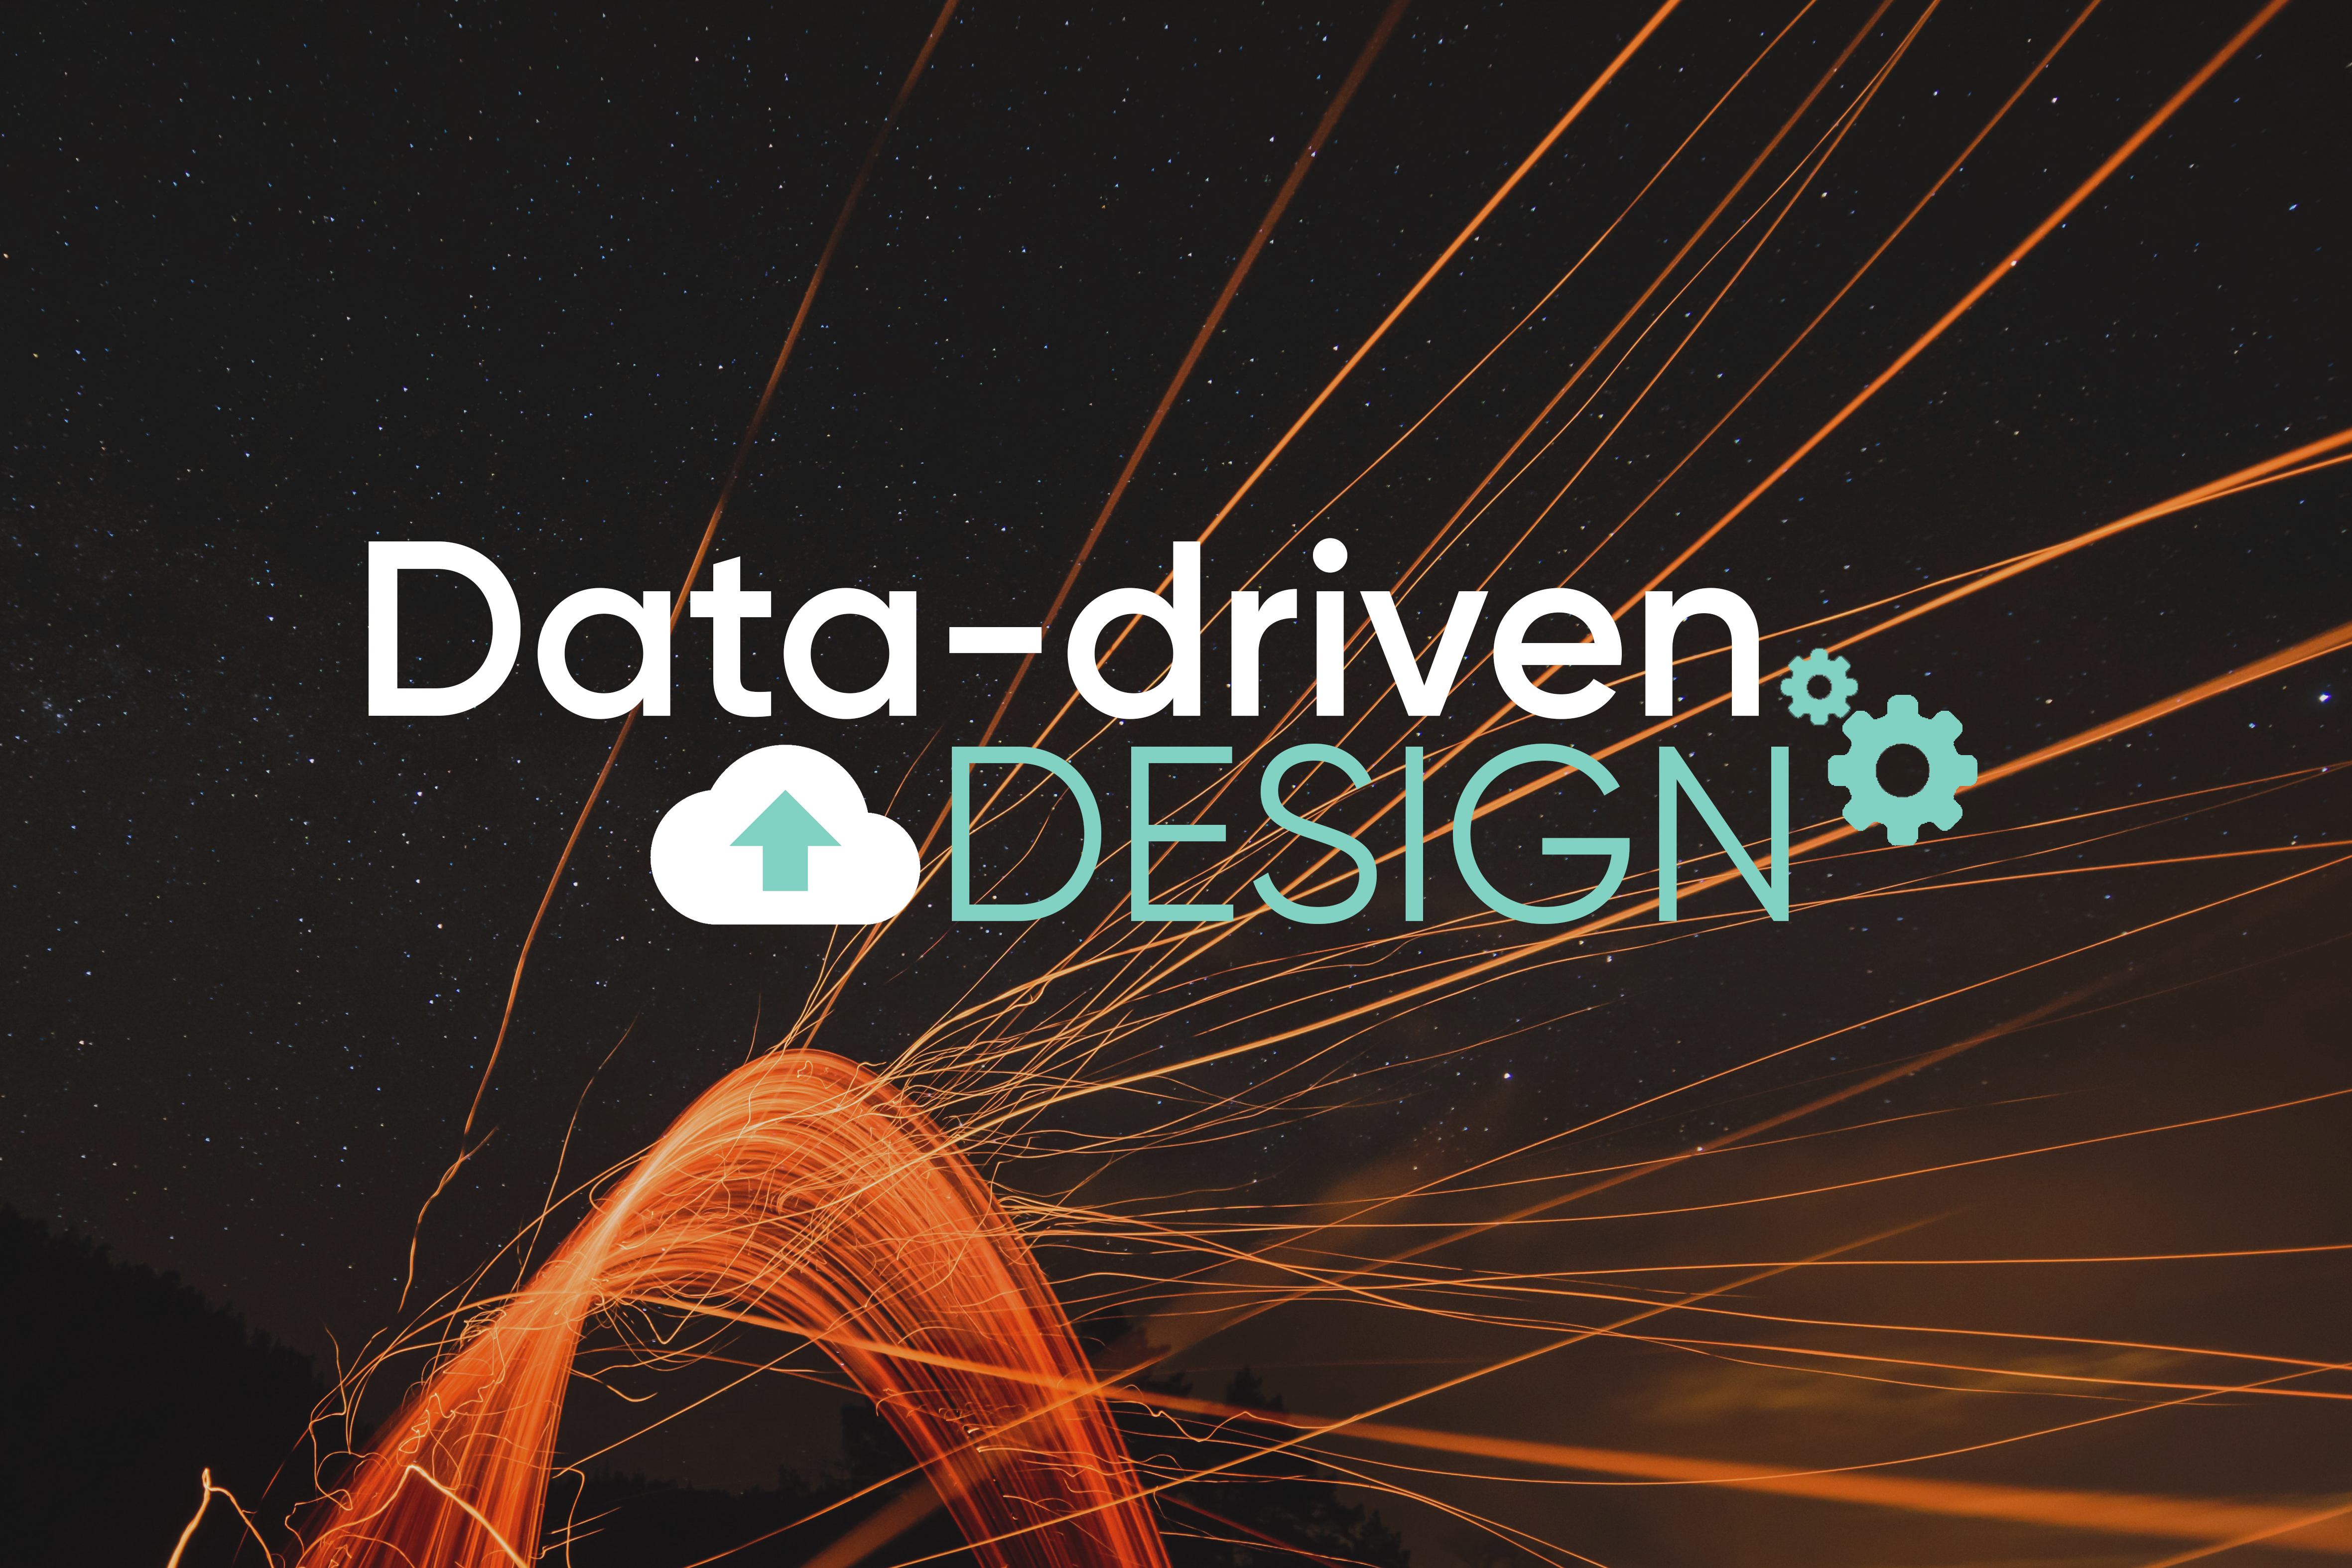 Why Your Workplace Needs Data-driven Design